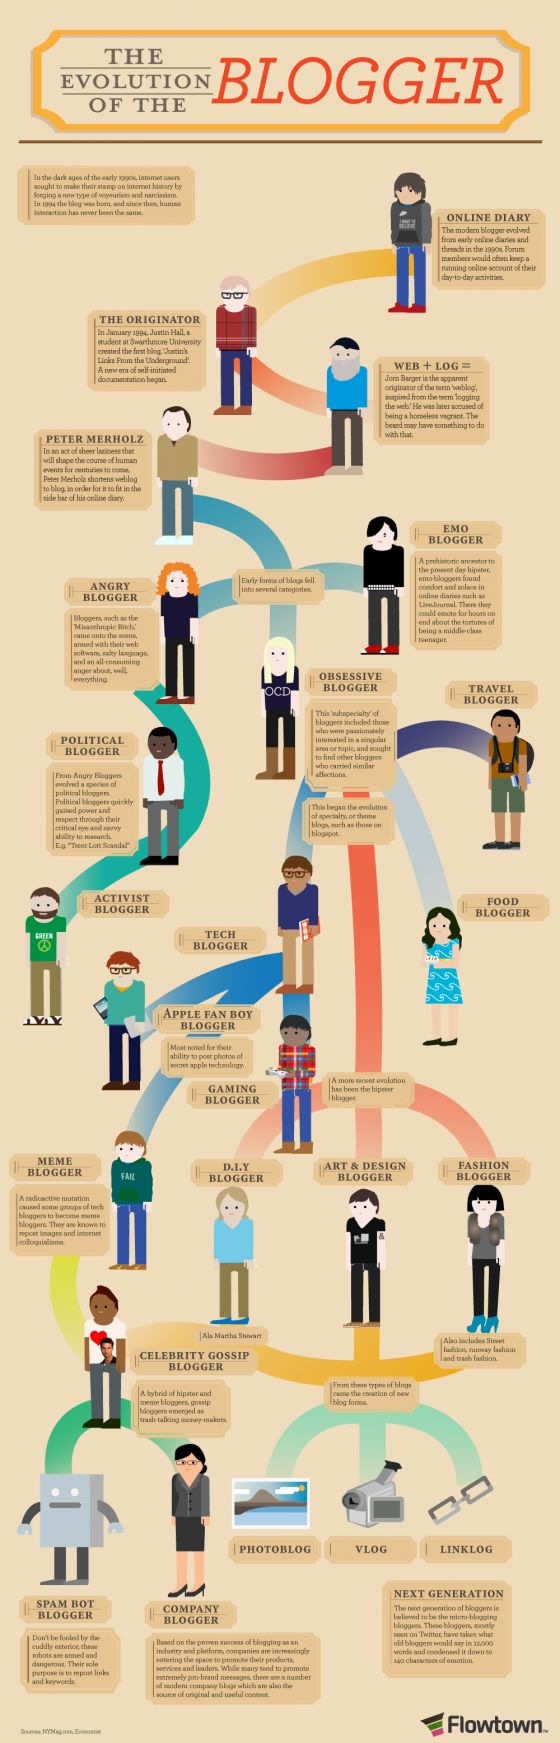 Infographic The Evolution of the Blogger   #blogging #infographic